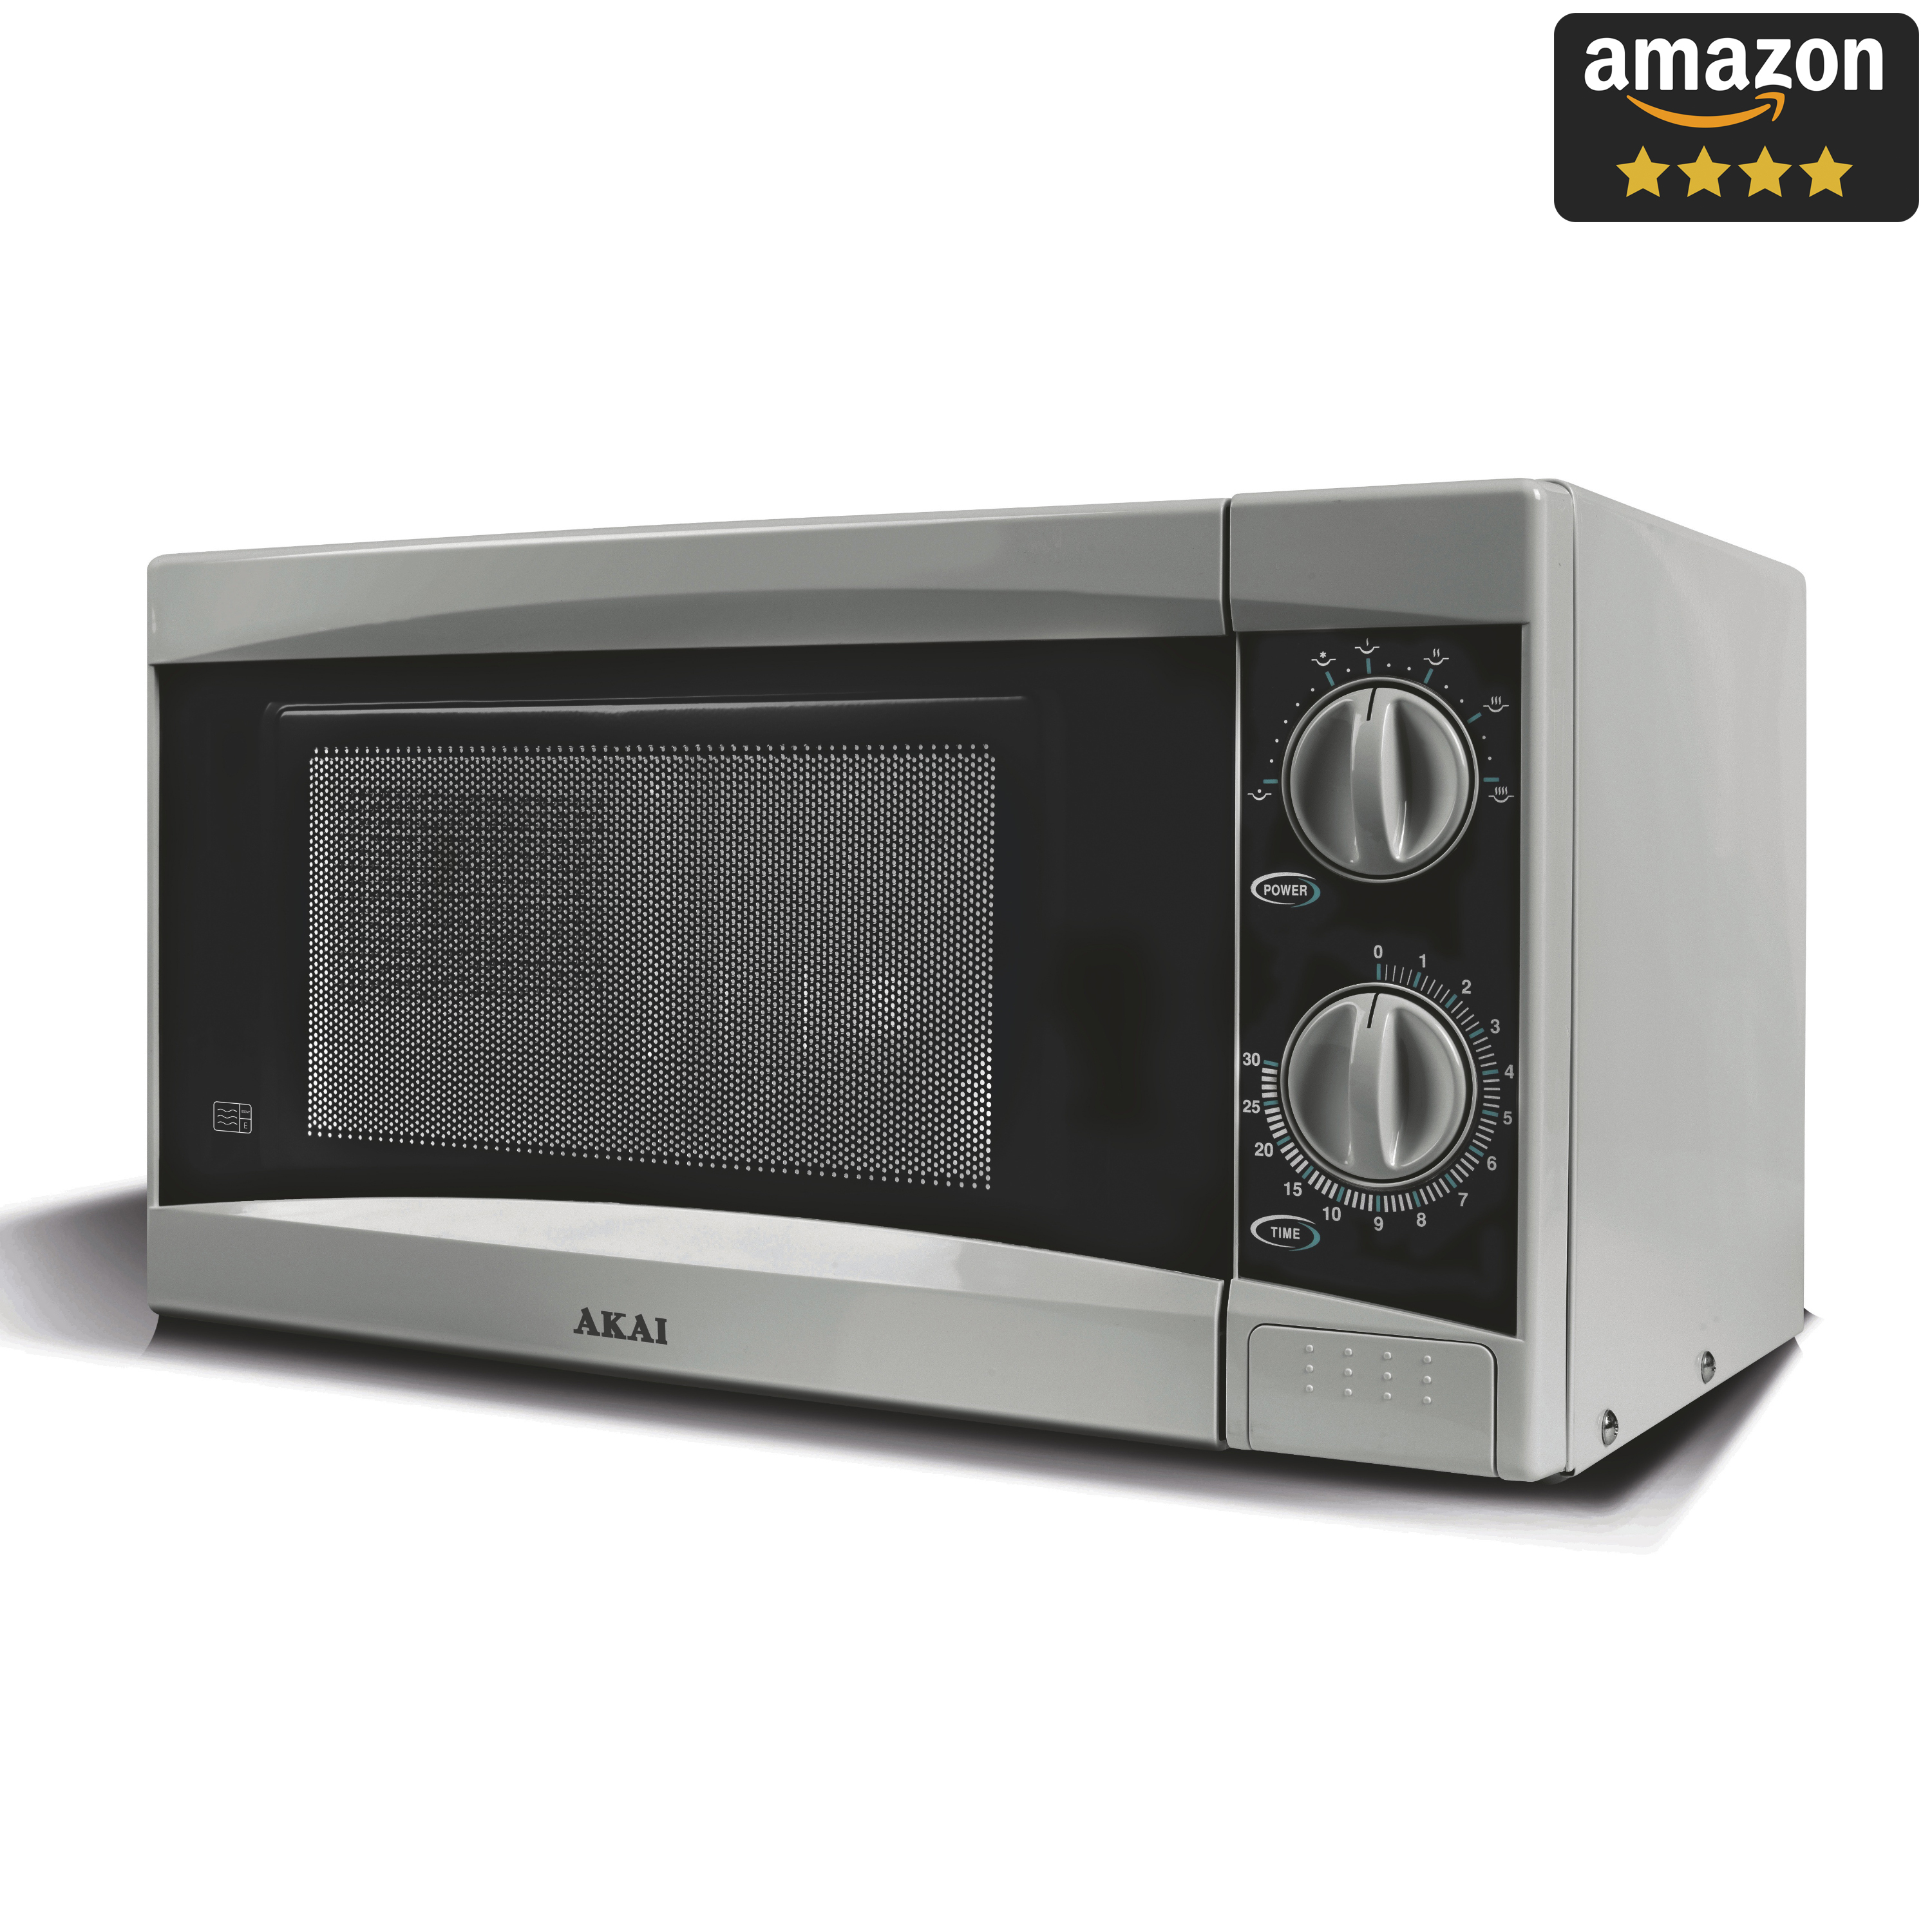 Akai 800W Manual Microwave No Colour